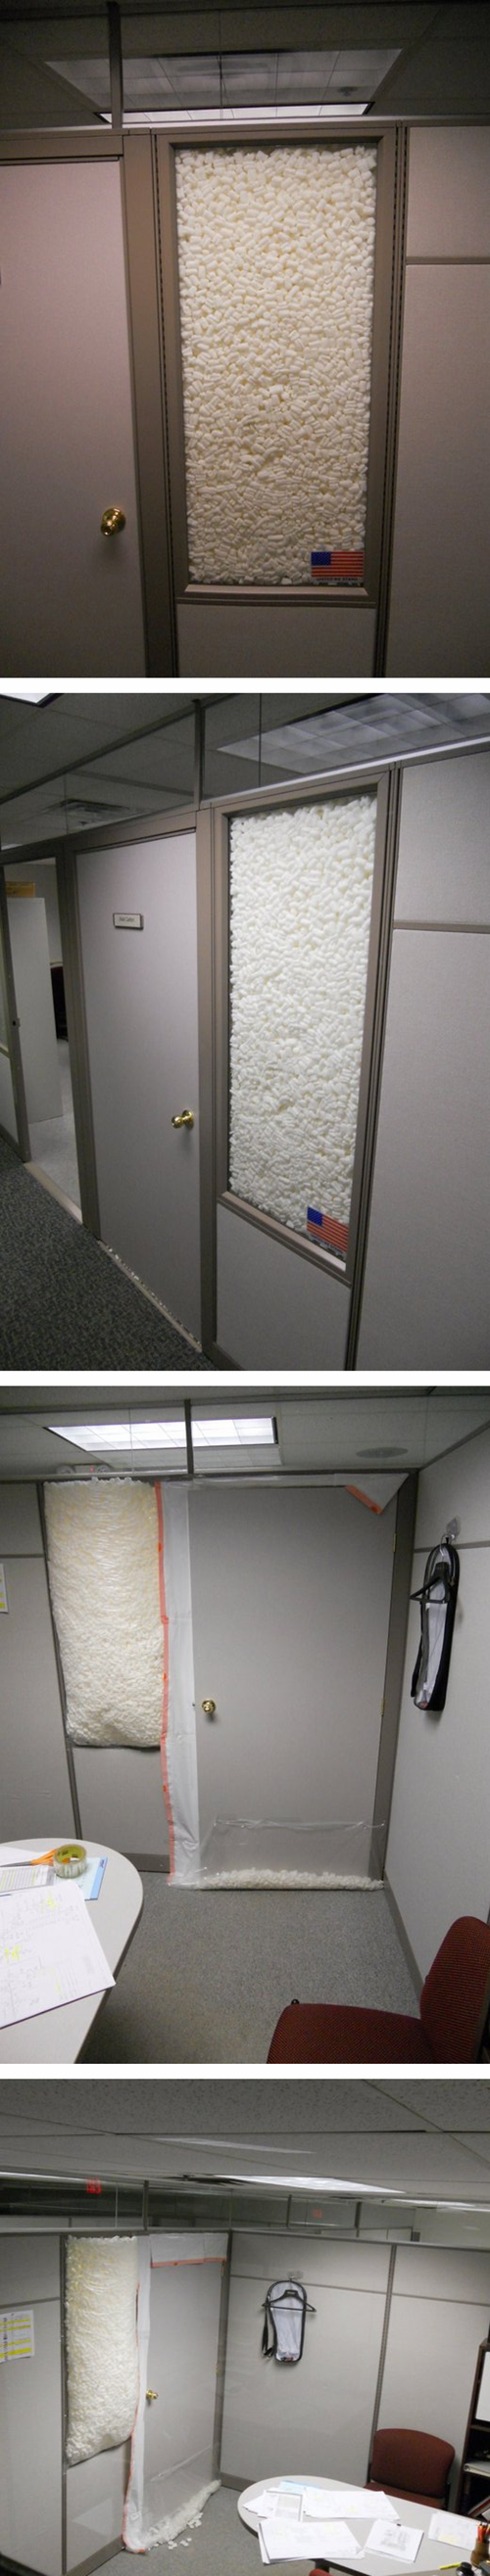 offices,april fools,pranks,monday thru friday,grated